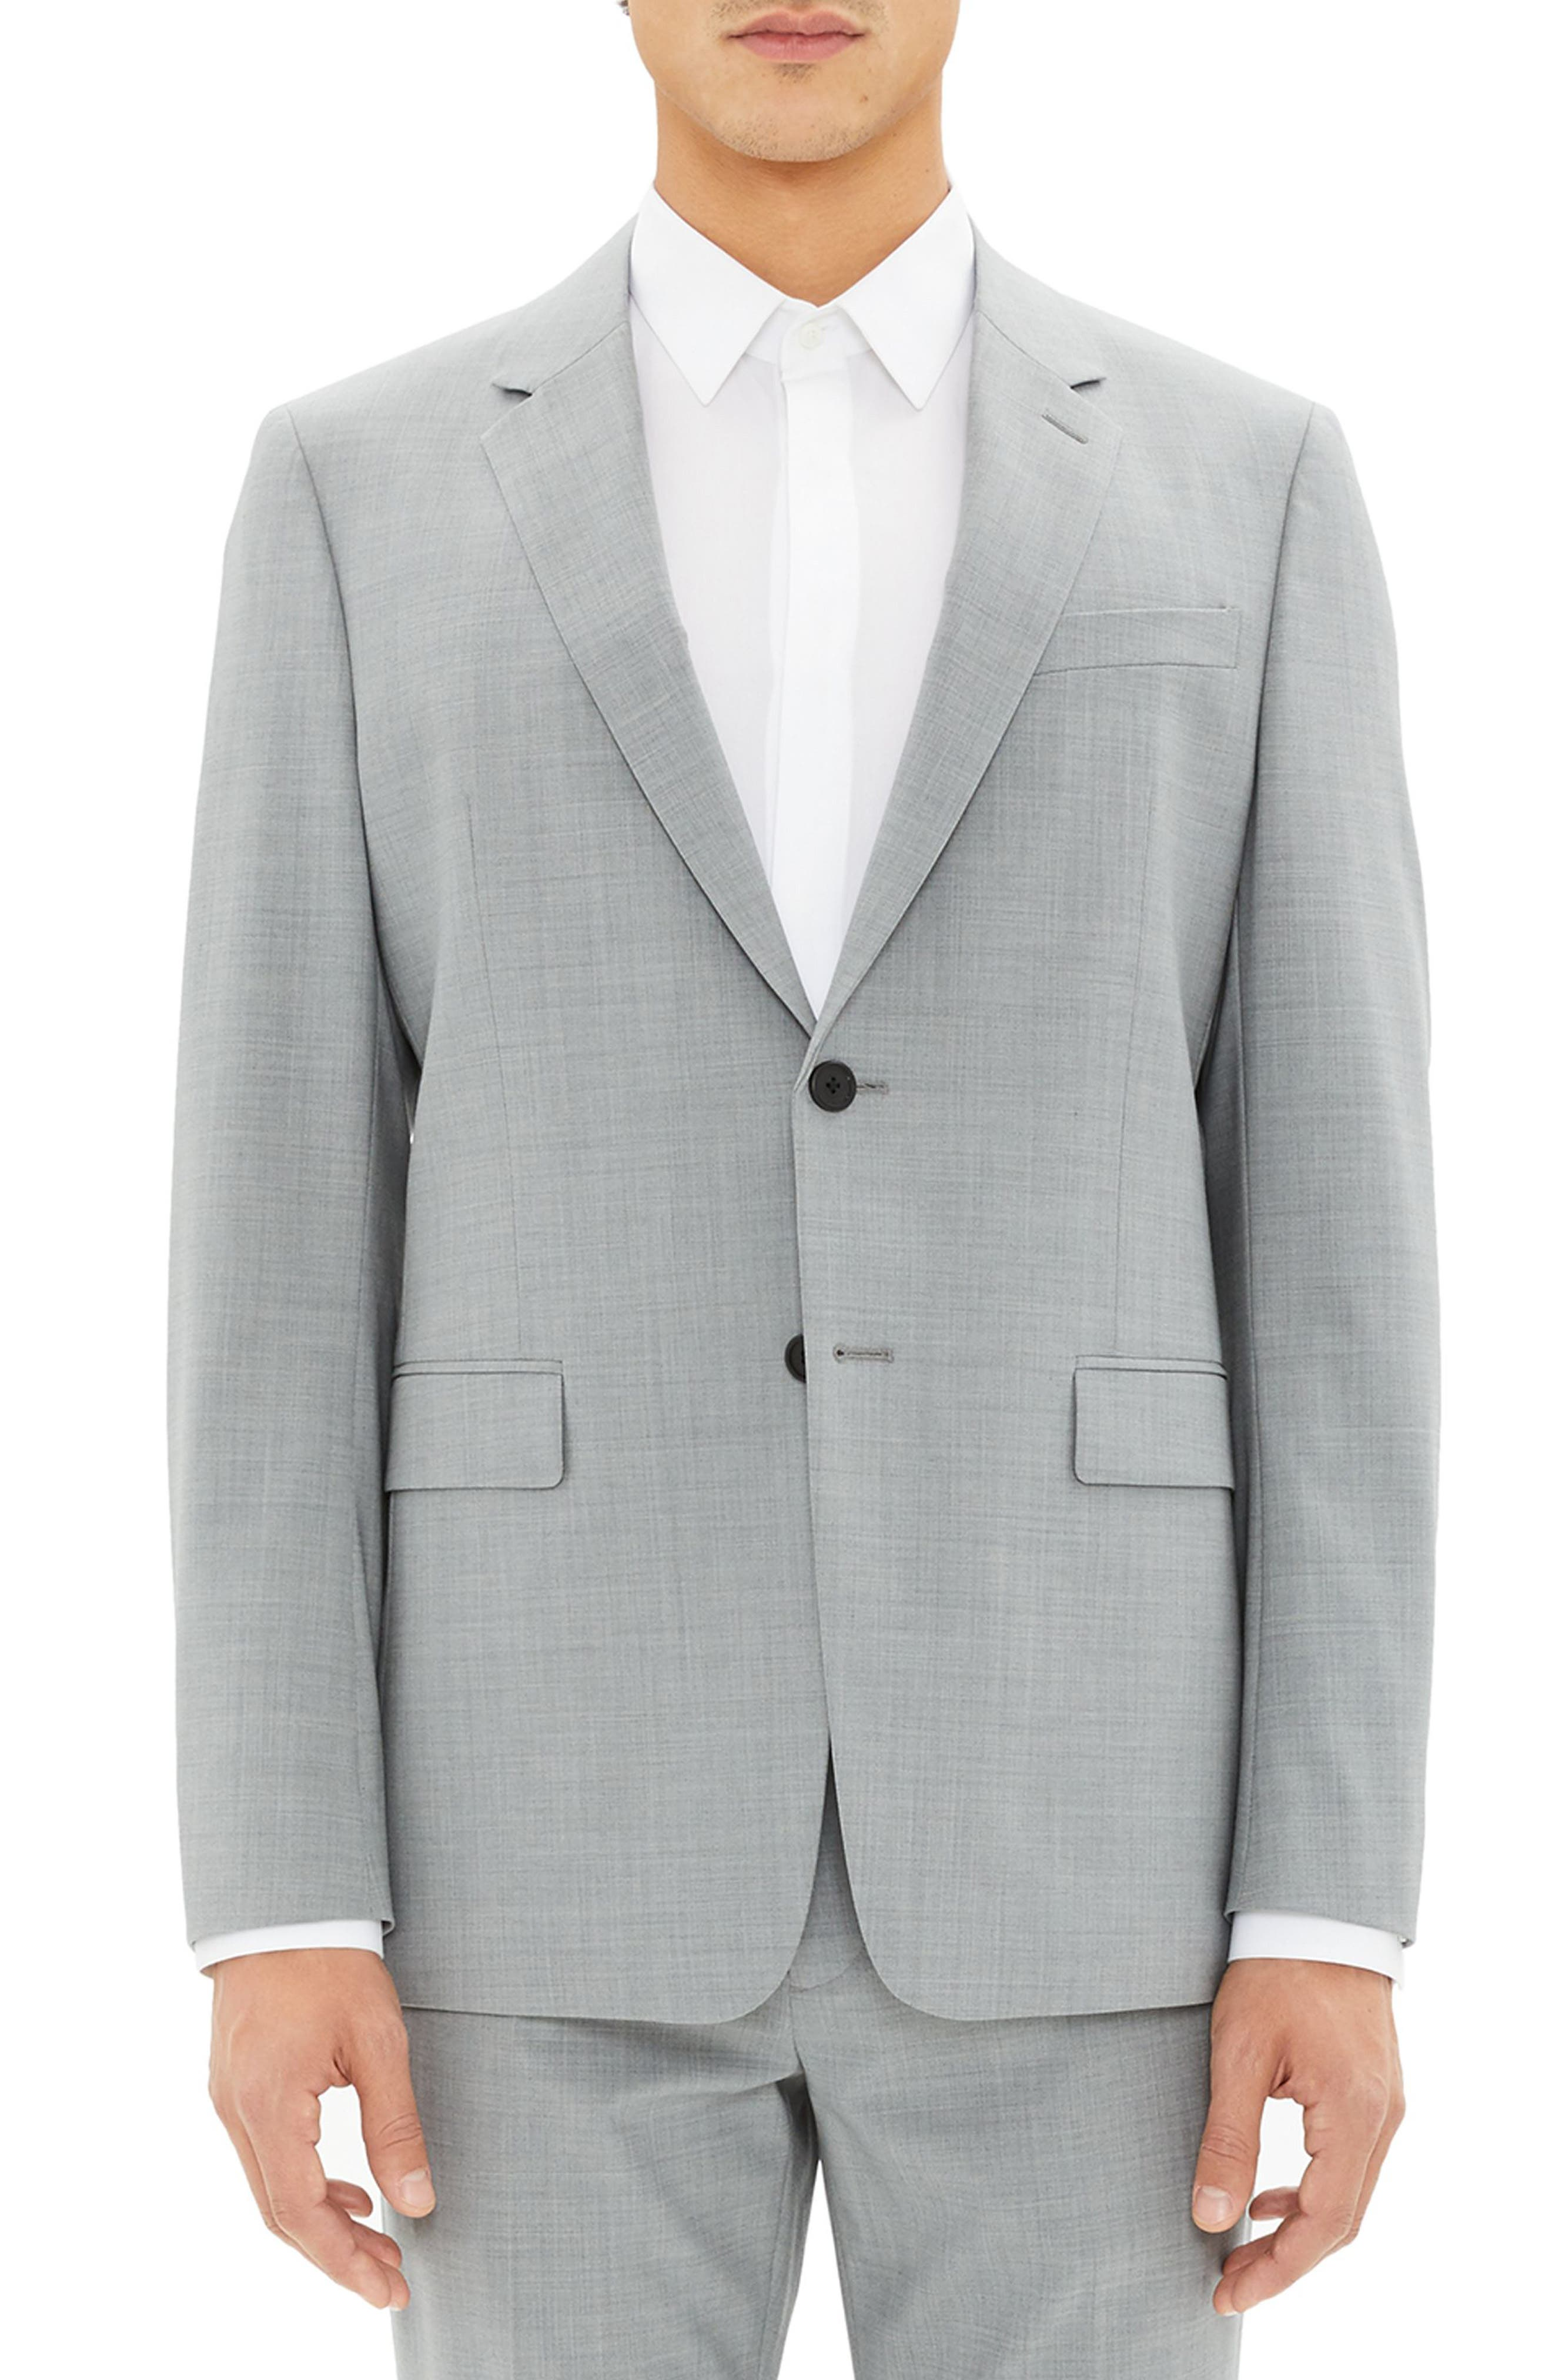 New Tailor Chambers Blazer,                             Main thumbnail 1, color,                             CHROME MELANGE